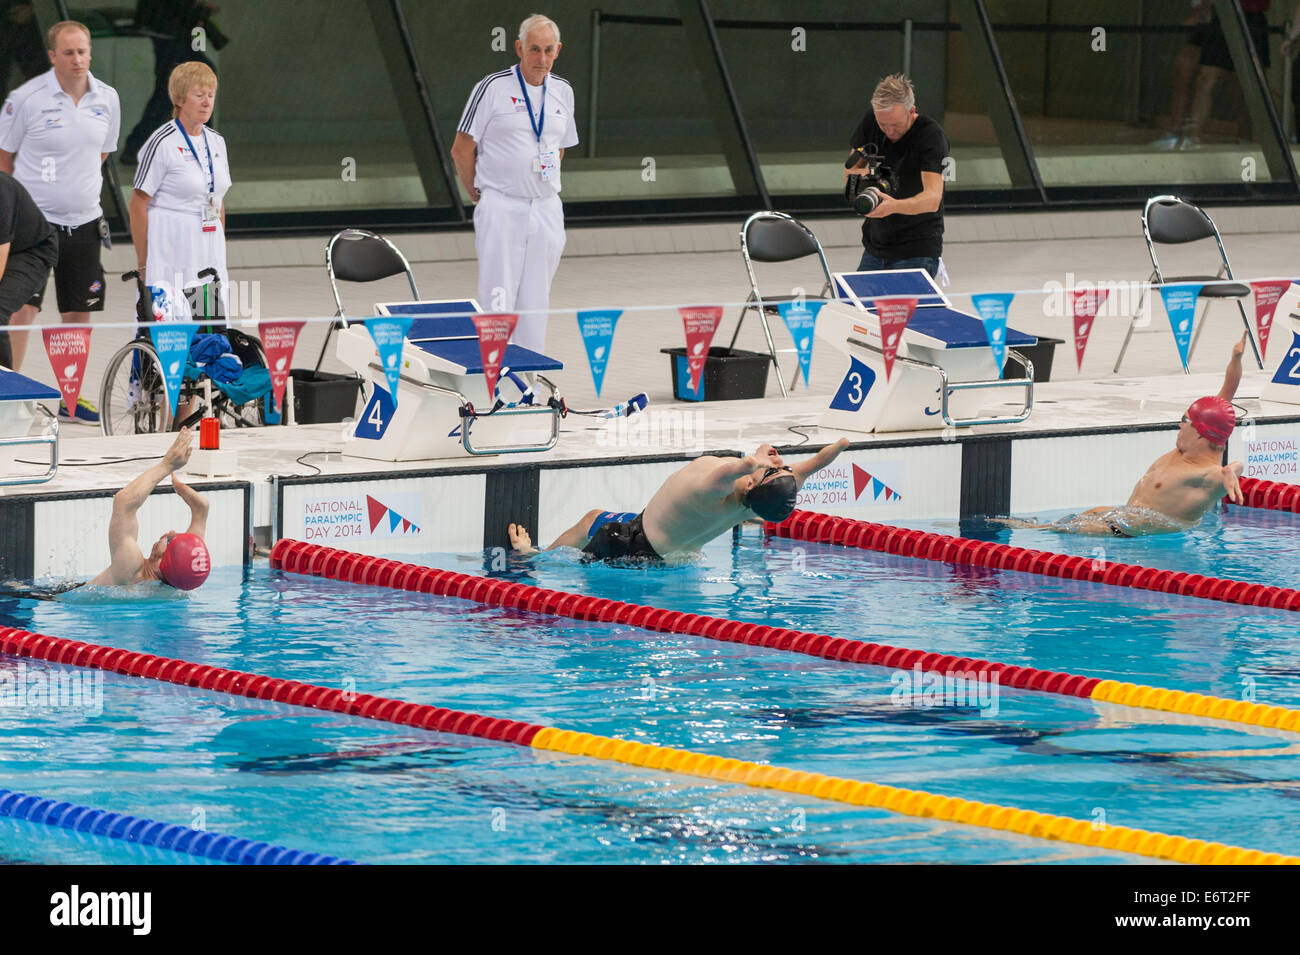 Sport swimming backstroke start stock photos sport - Queen elizabeth olympic park swimming pool ...